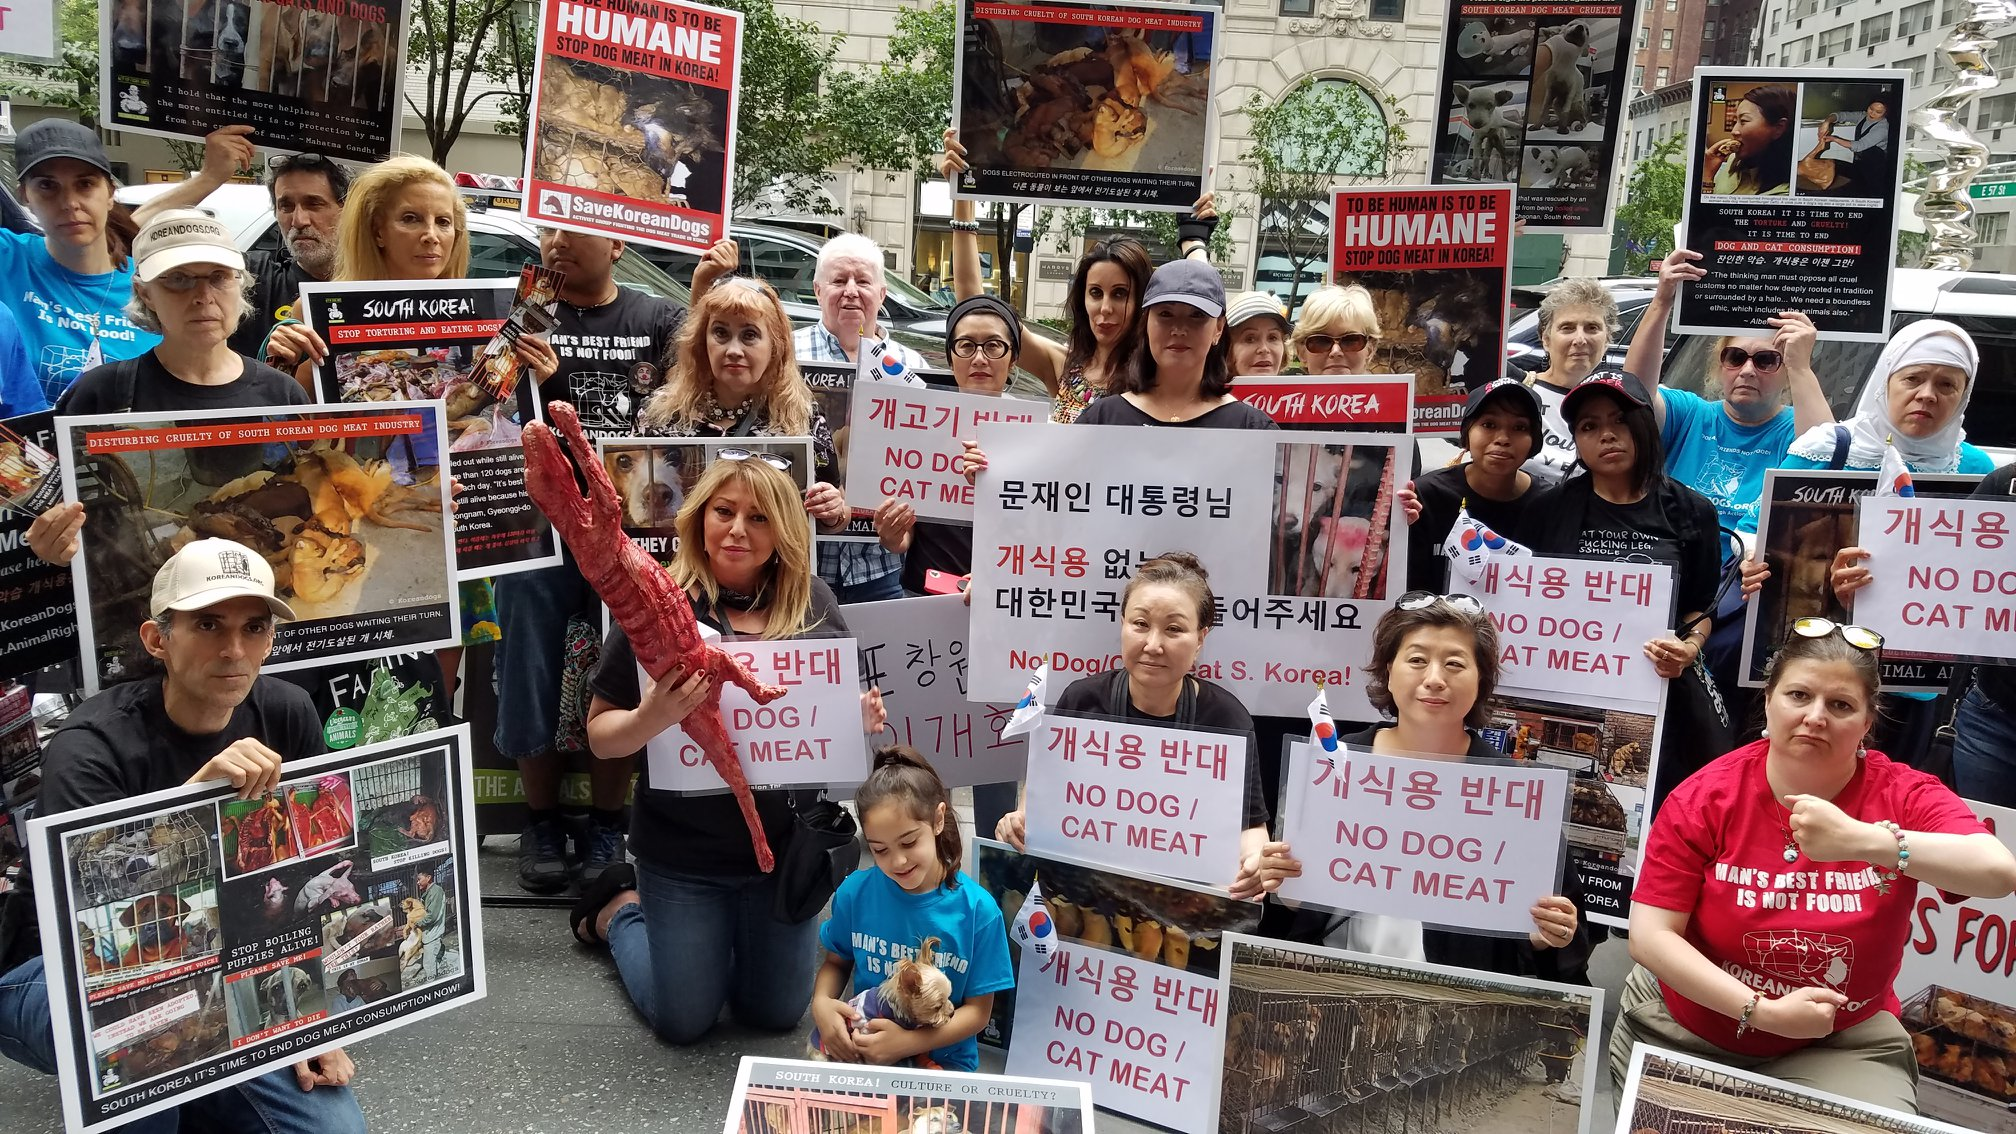 https://koreandogs.org/ny-demo-july-30-2018/?utm_source=sendinblue&utm_campaign=Exposing_Seongnams_Illegal_Dog_Slaughterhouses__New_Calls_for_Action!&utm_medium=email